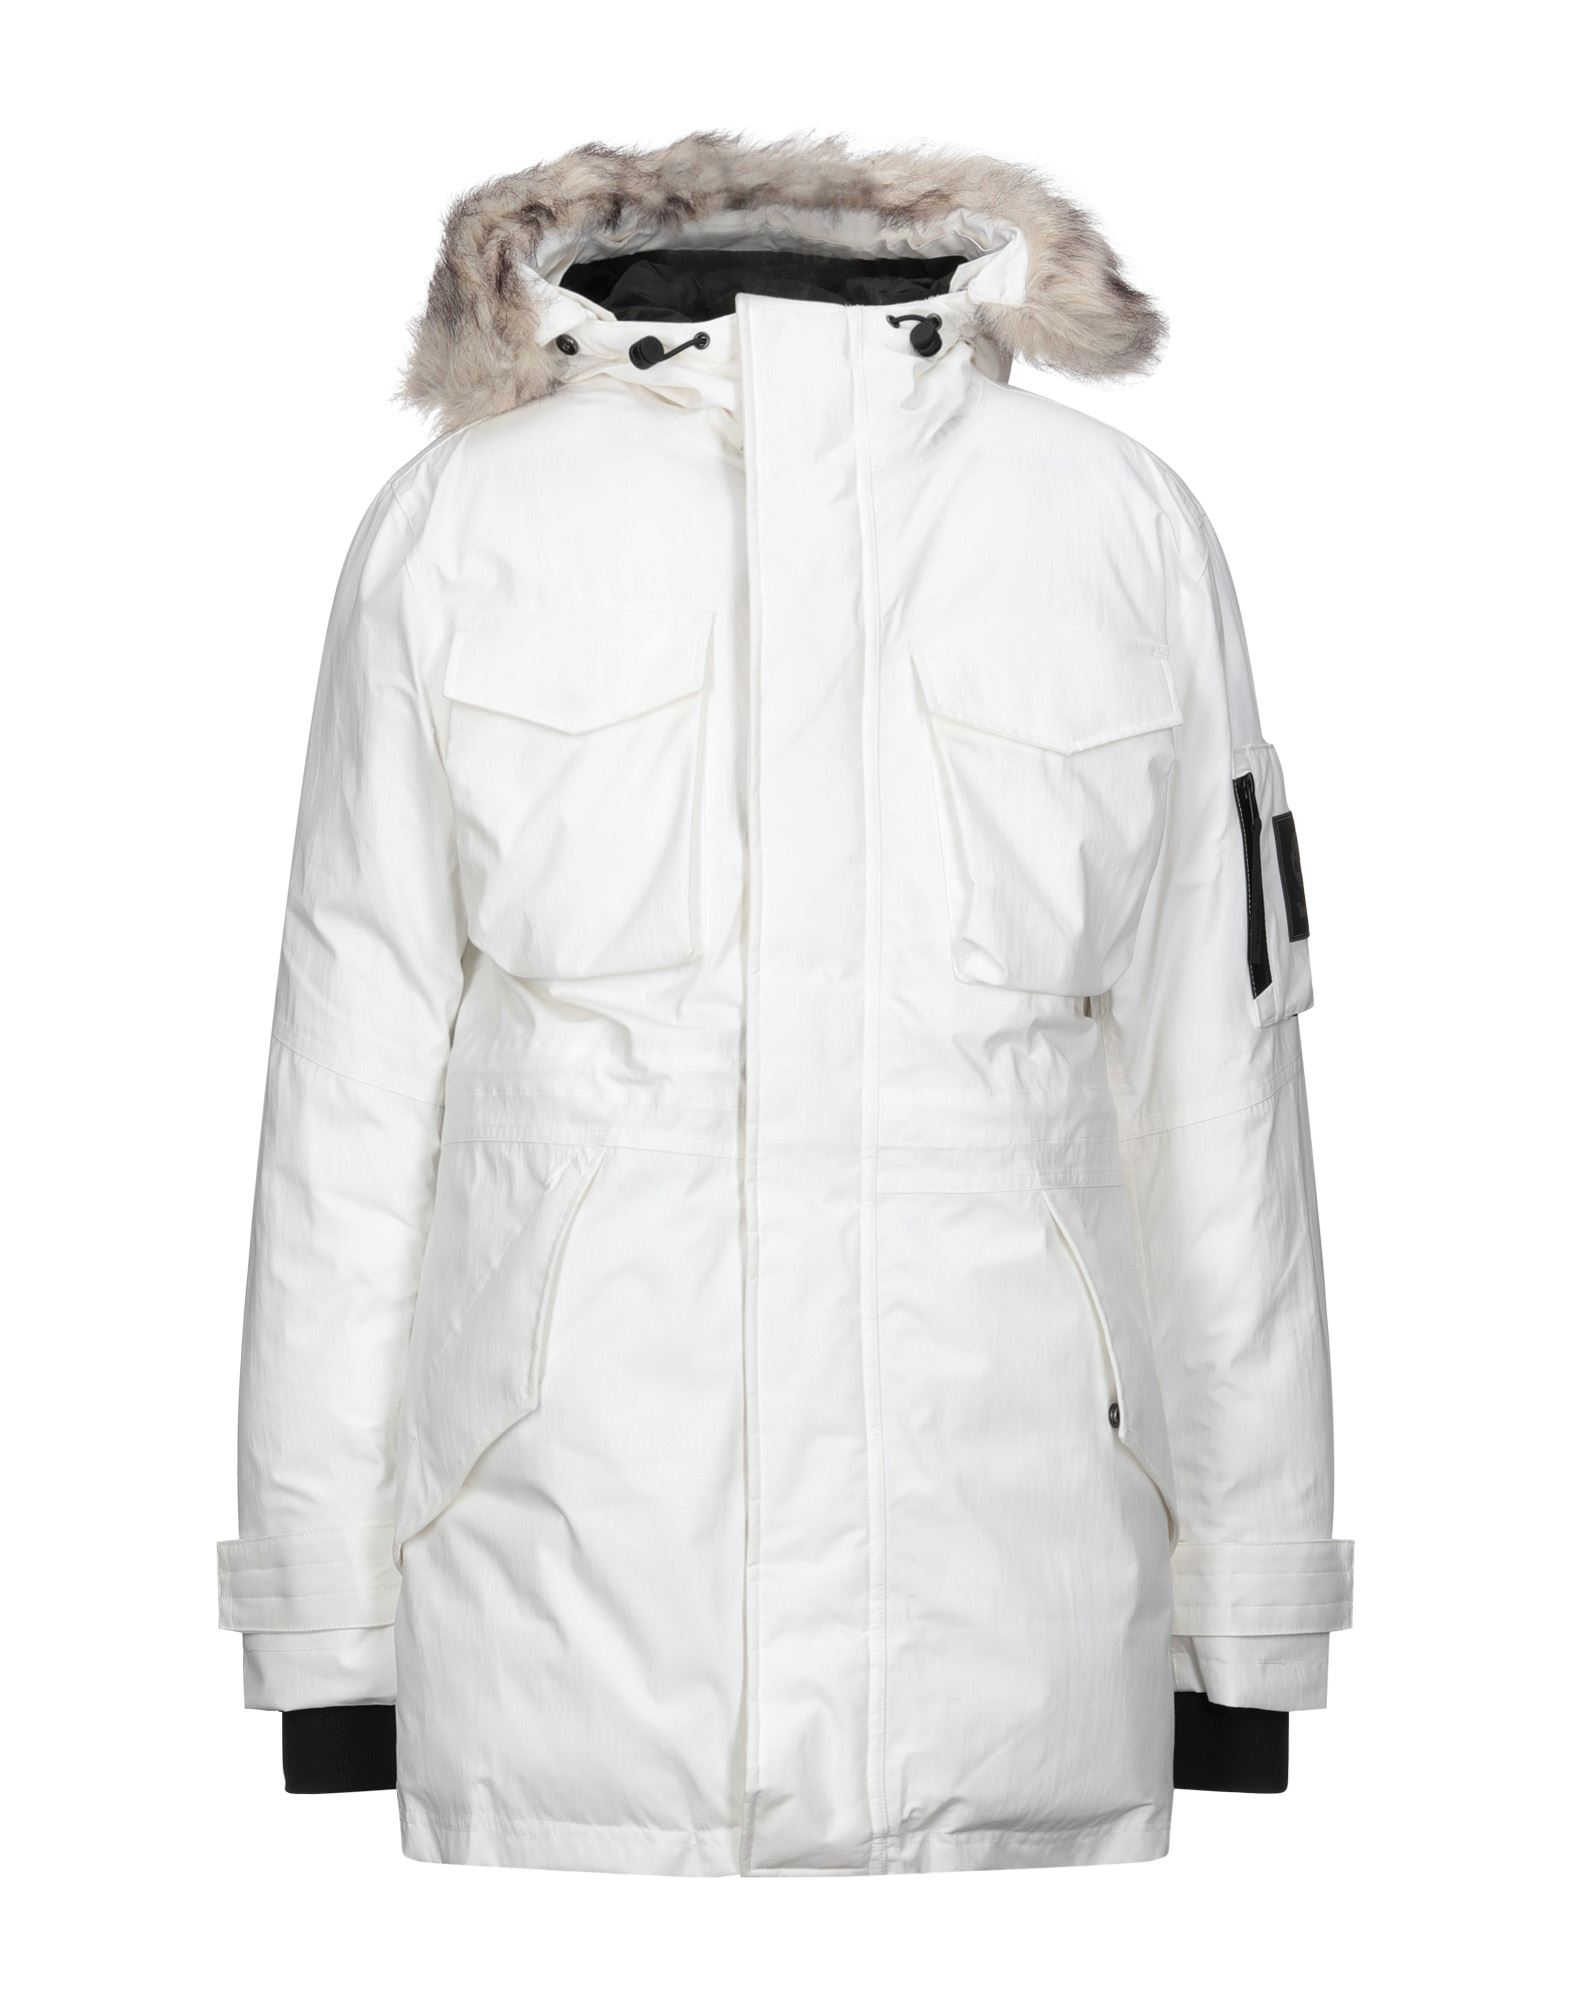 TIMBERLAND Synthetic Down Jackets - Item 16010109